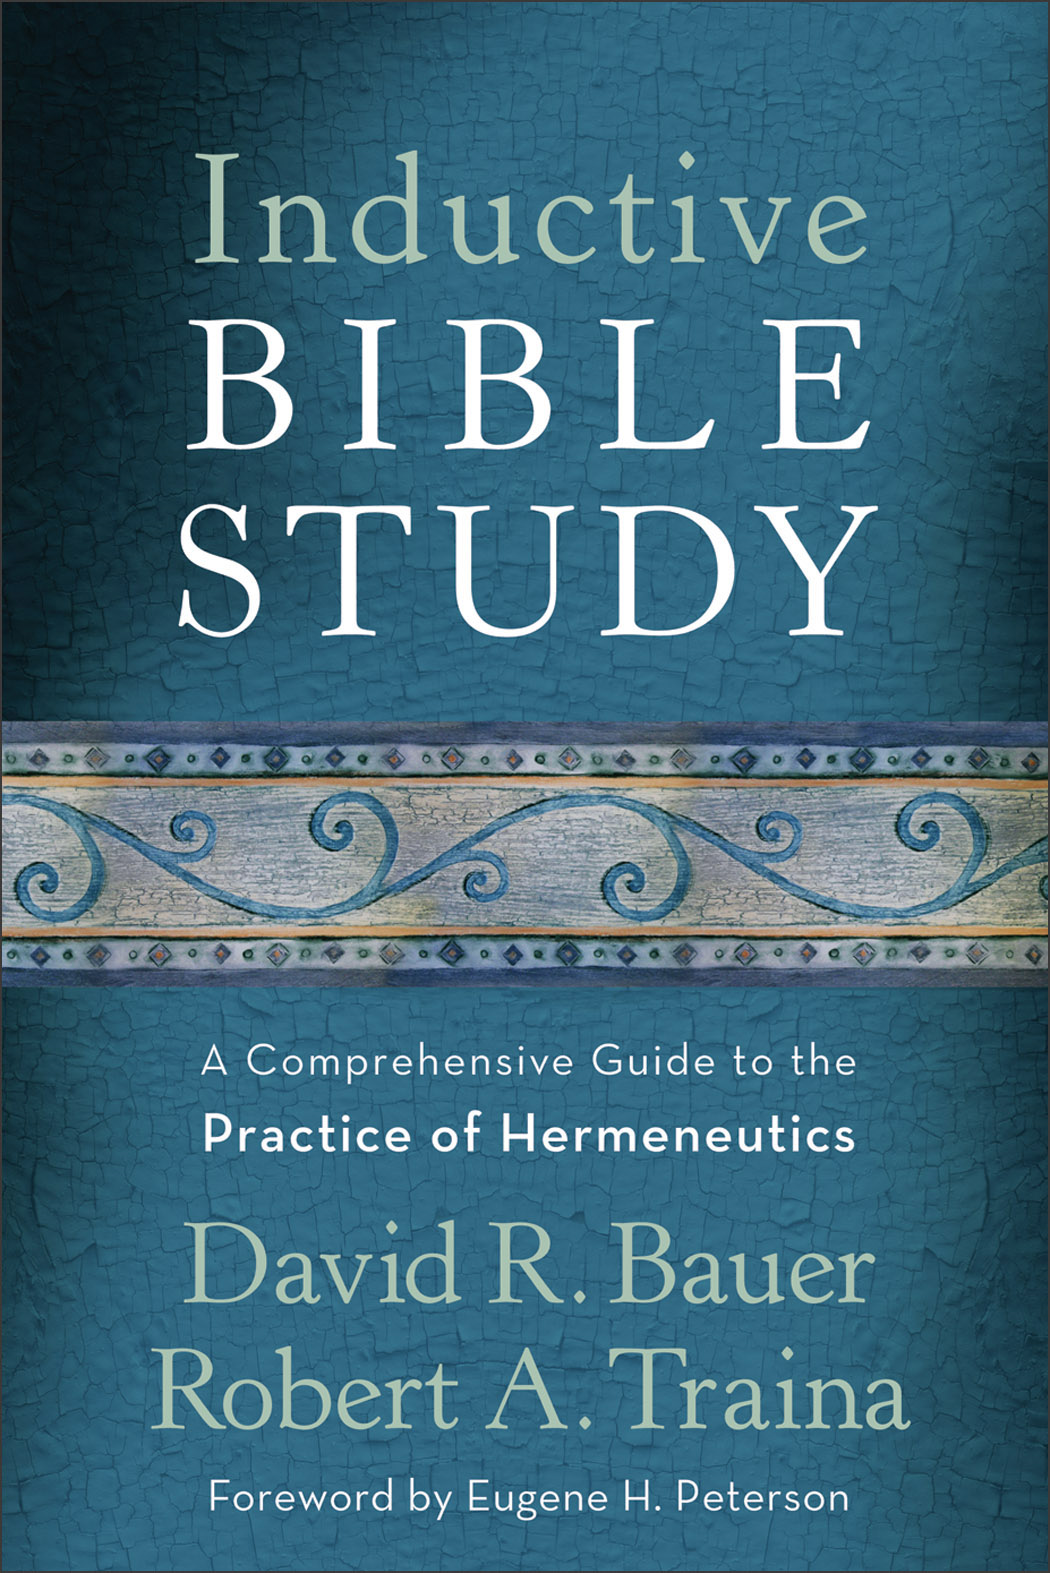 Inductive Bible Study By: David R. Bauer,Robert A. Traina